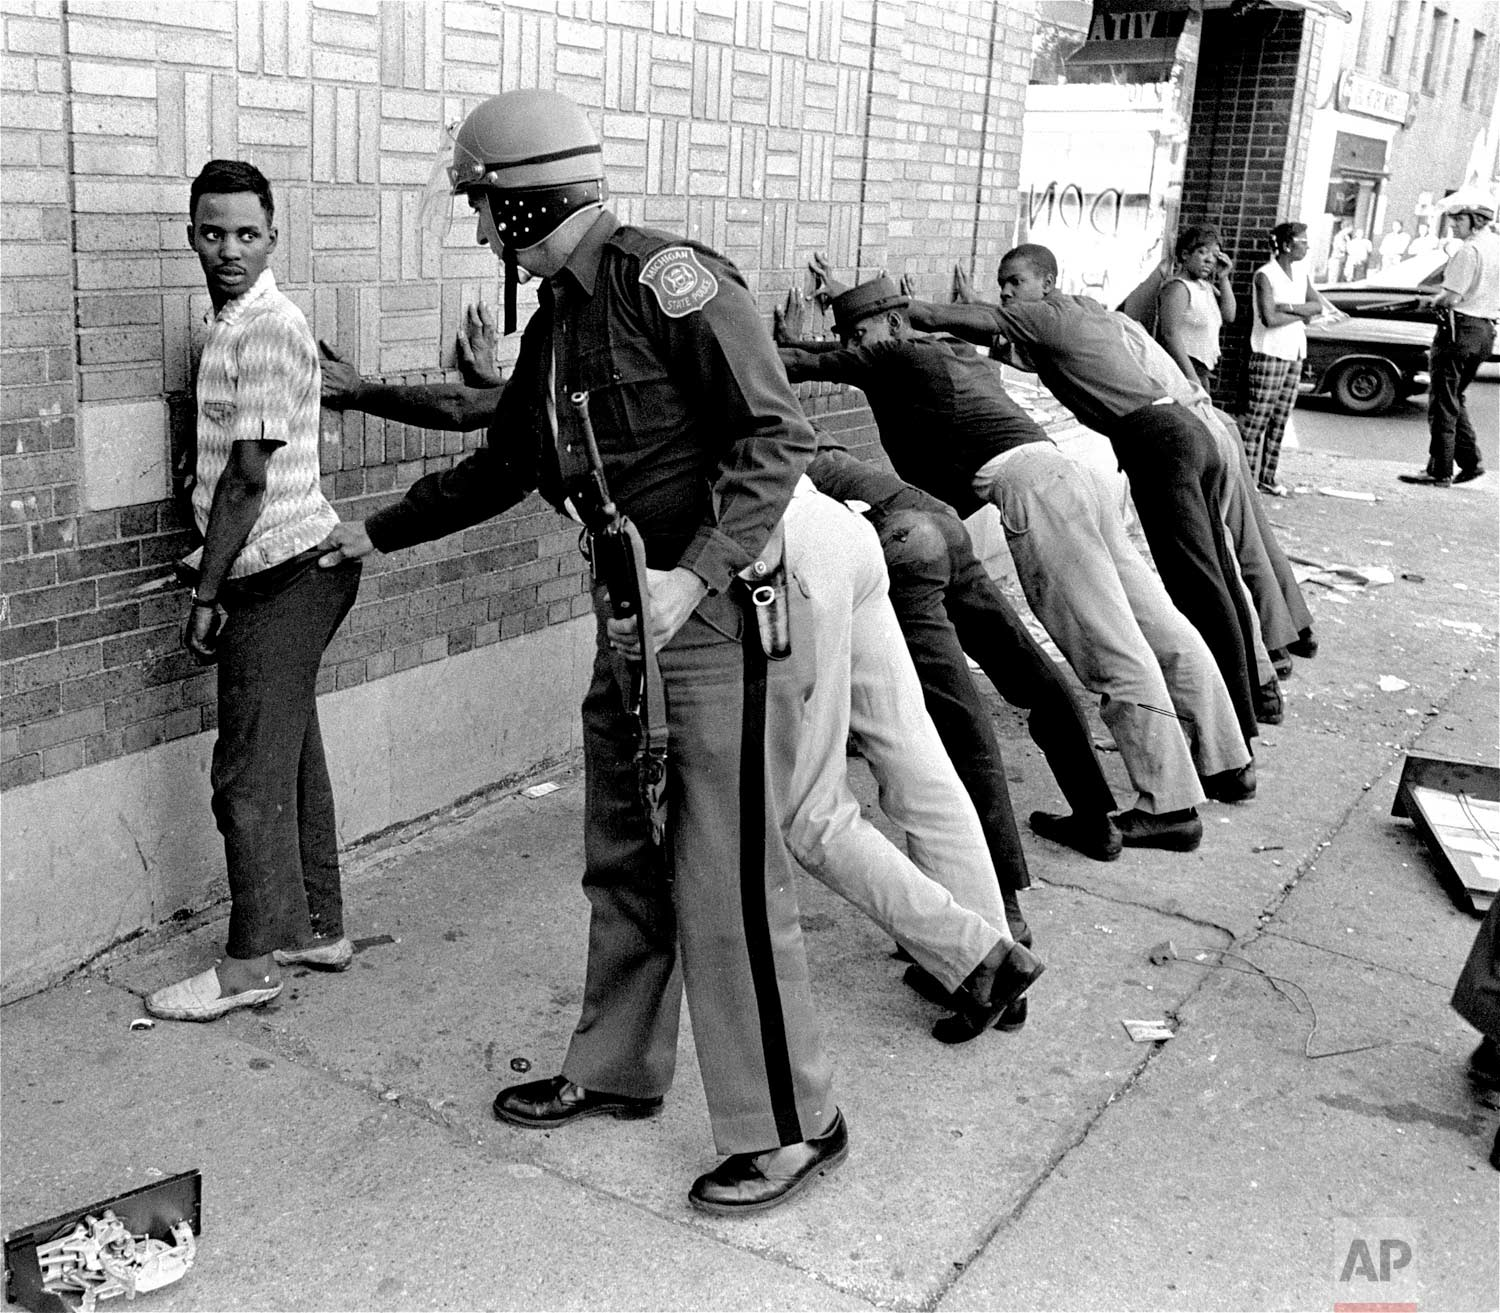 In this July 24, 1967 photo, a Michigan State police officer searches a youth on Detroit's 12th Street where looting was still in progress after the previous day's rioting. The July 23, 1967 raid of an illegal after-hour's club, though, was just the spark. Many in the community blamed frustrations blacks felt toward the mostly white police, and city policies that pushed families into aging and over-crowded neighborhoods. (AP Photo)